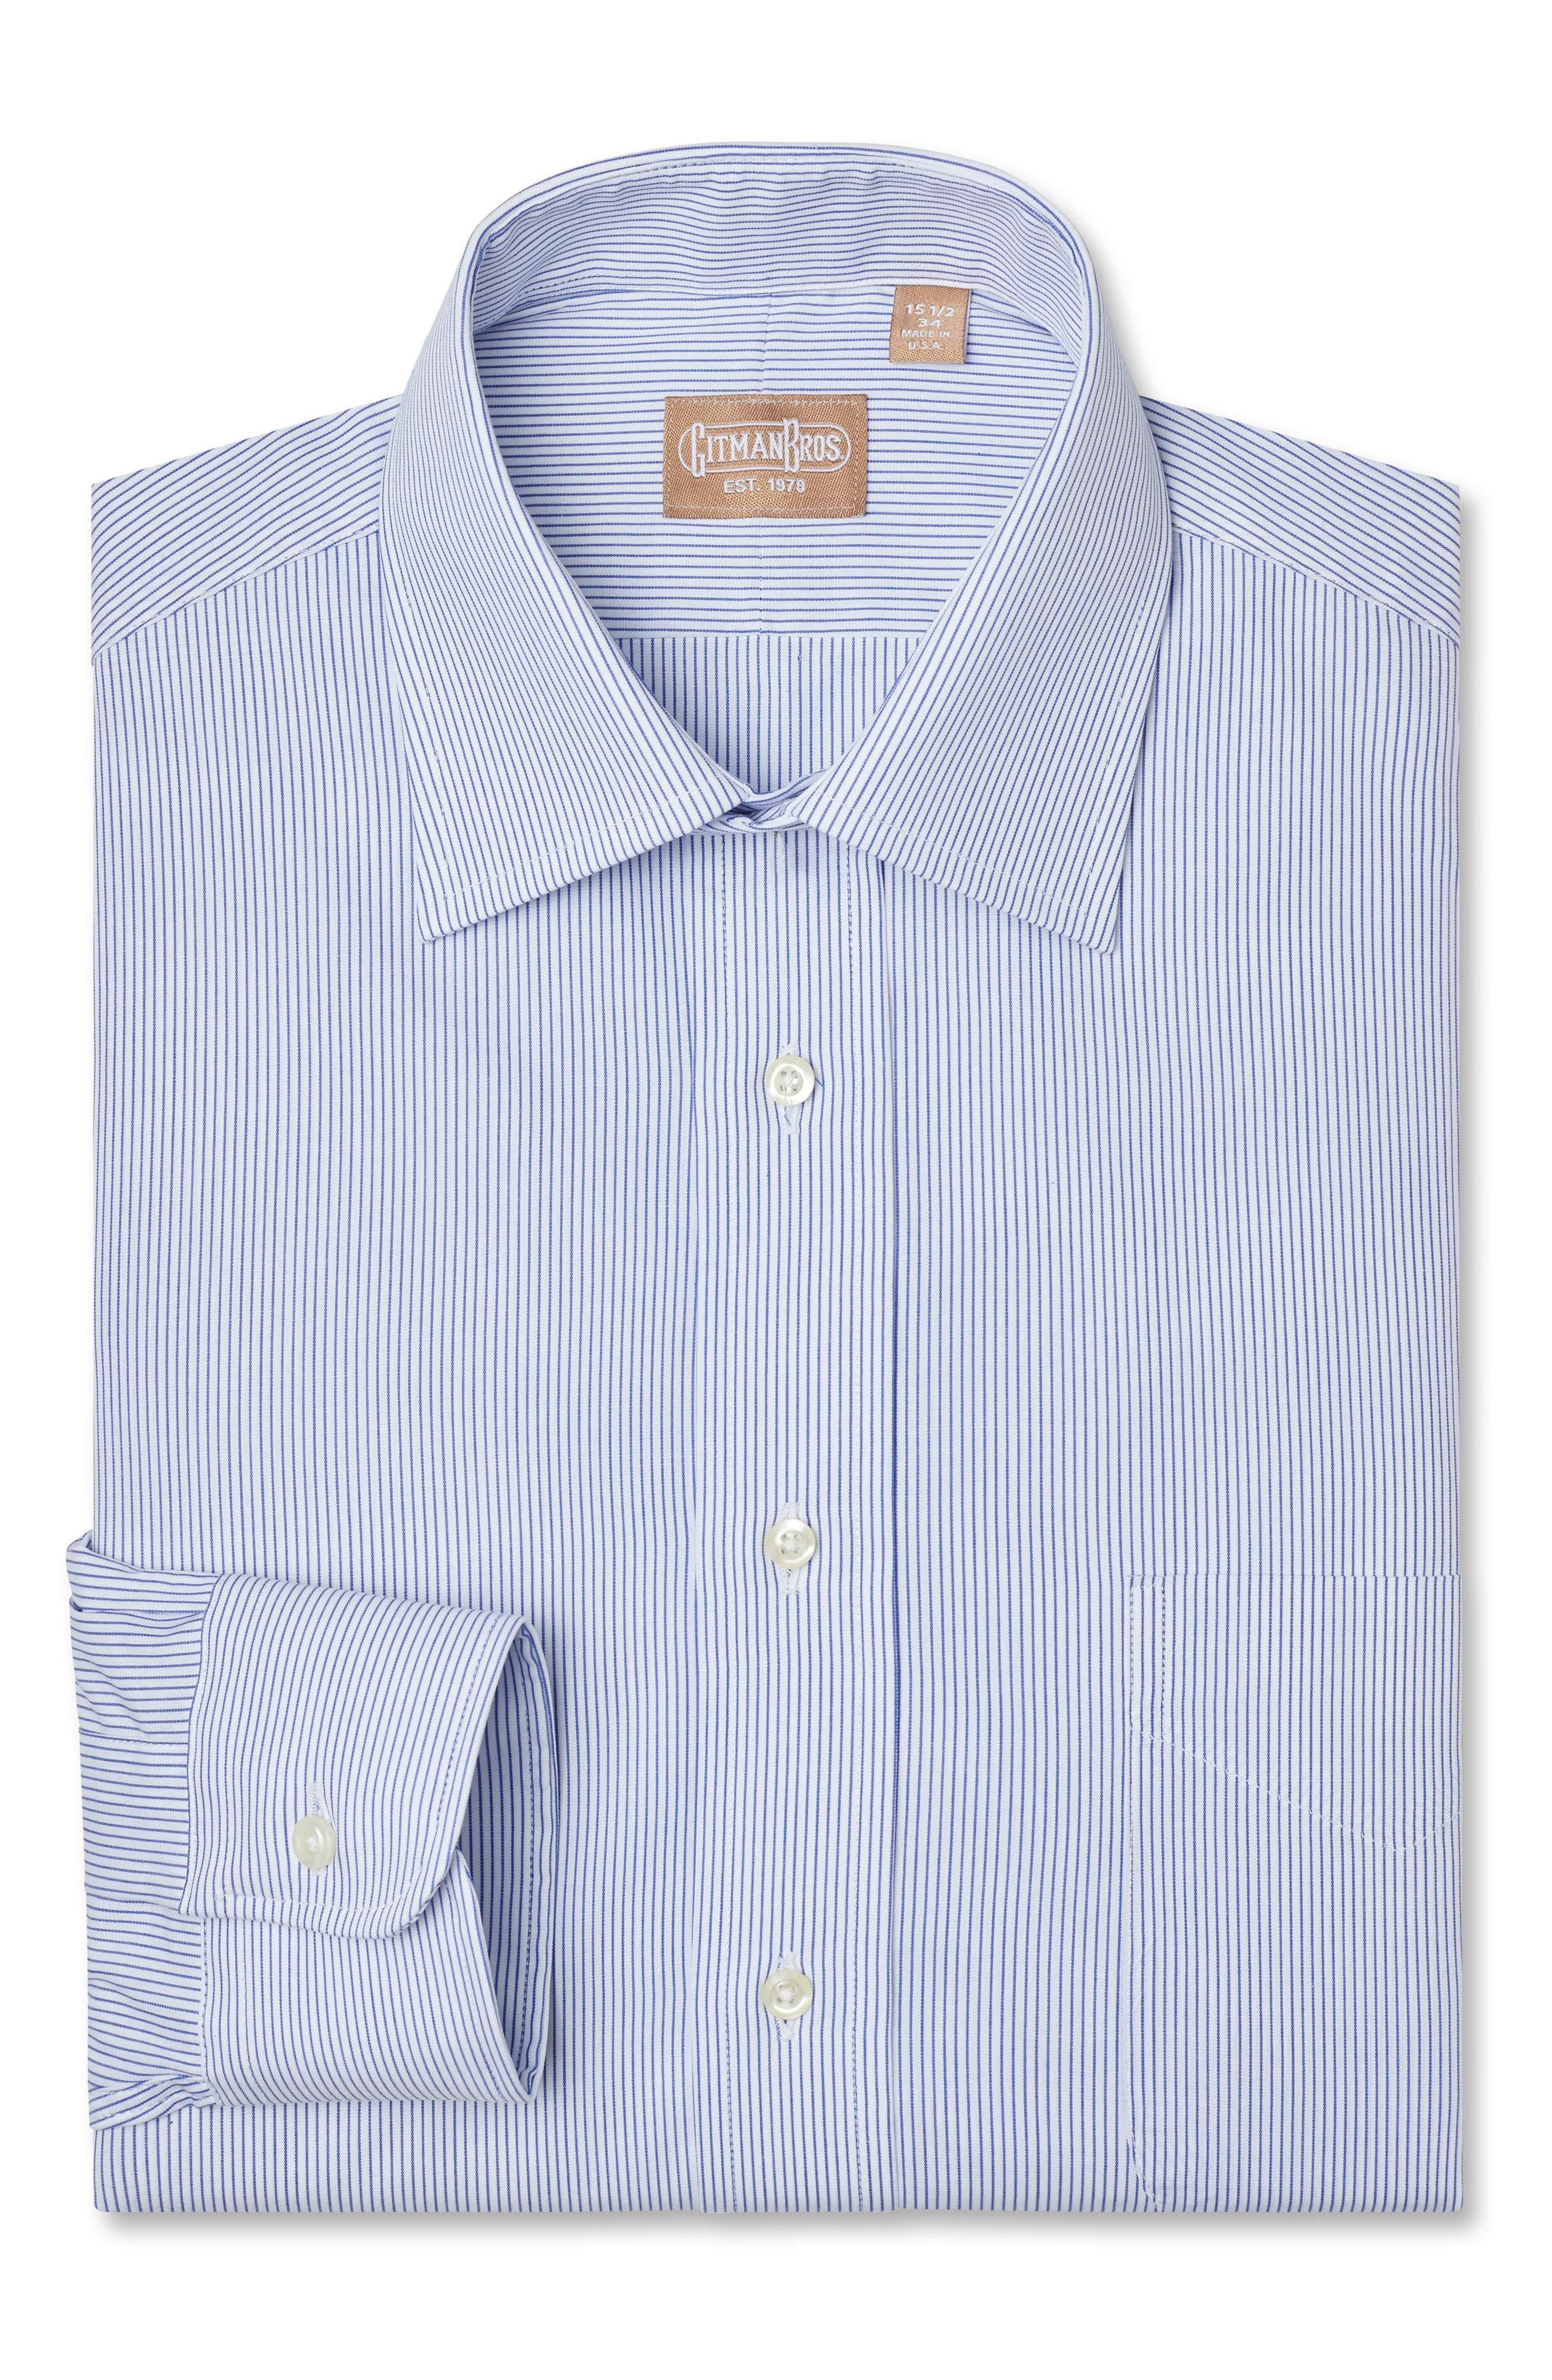 Regular Fit Stripe Dress Shirt,                             Main thumbnail 1, color,                             430